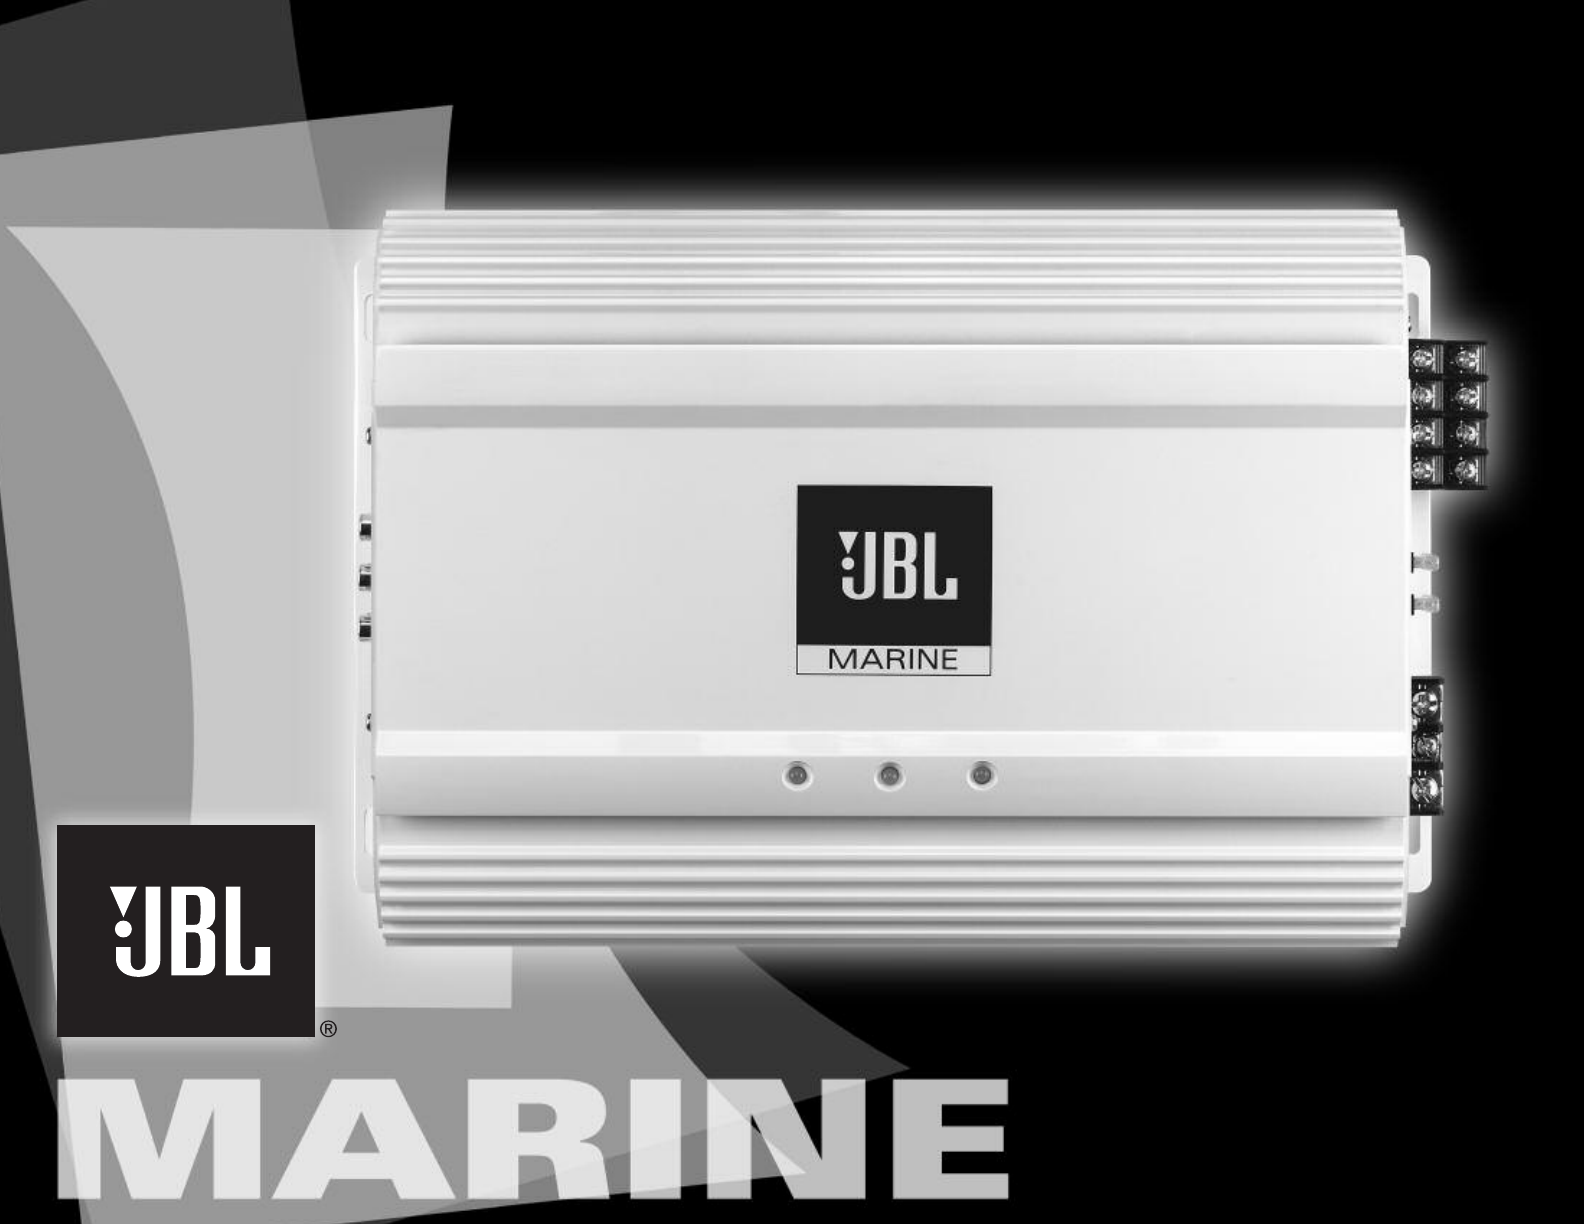 jbl stereo amplifier ma6004 user guide manualsonline com rh audio manualsonline com JBL Marine Radios with iPod JBL Mr18 Marine Radio